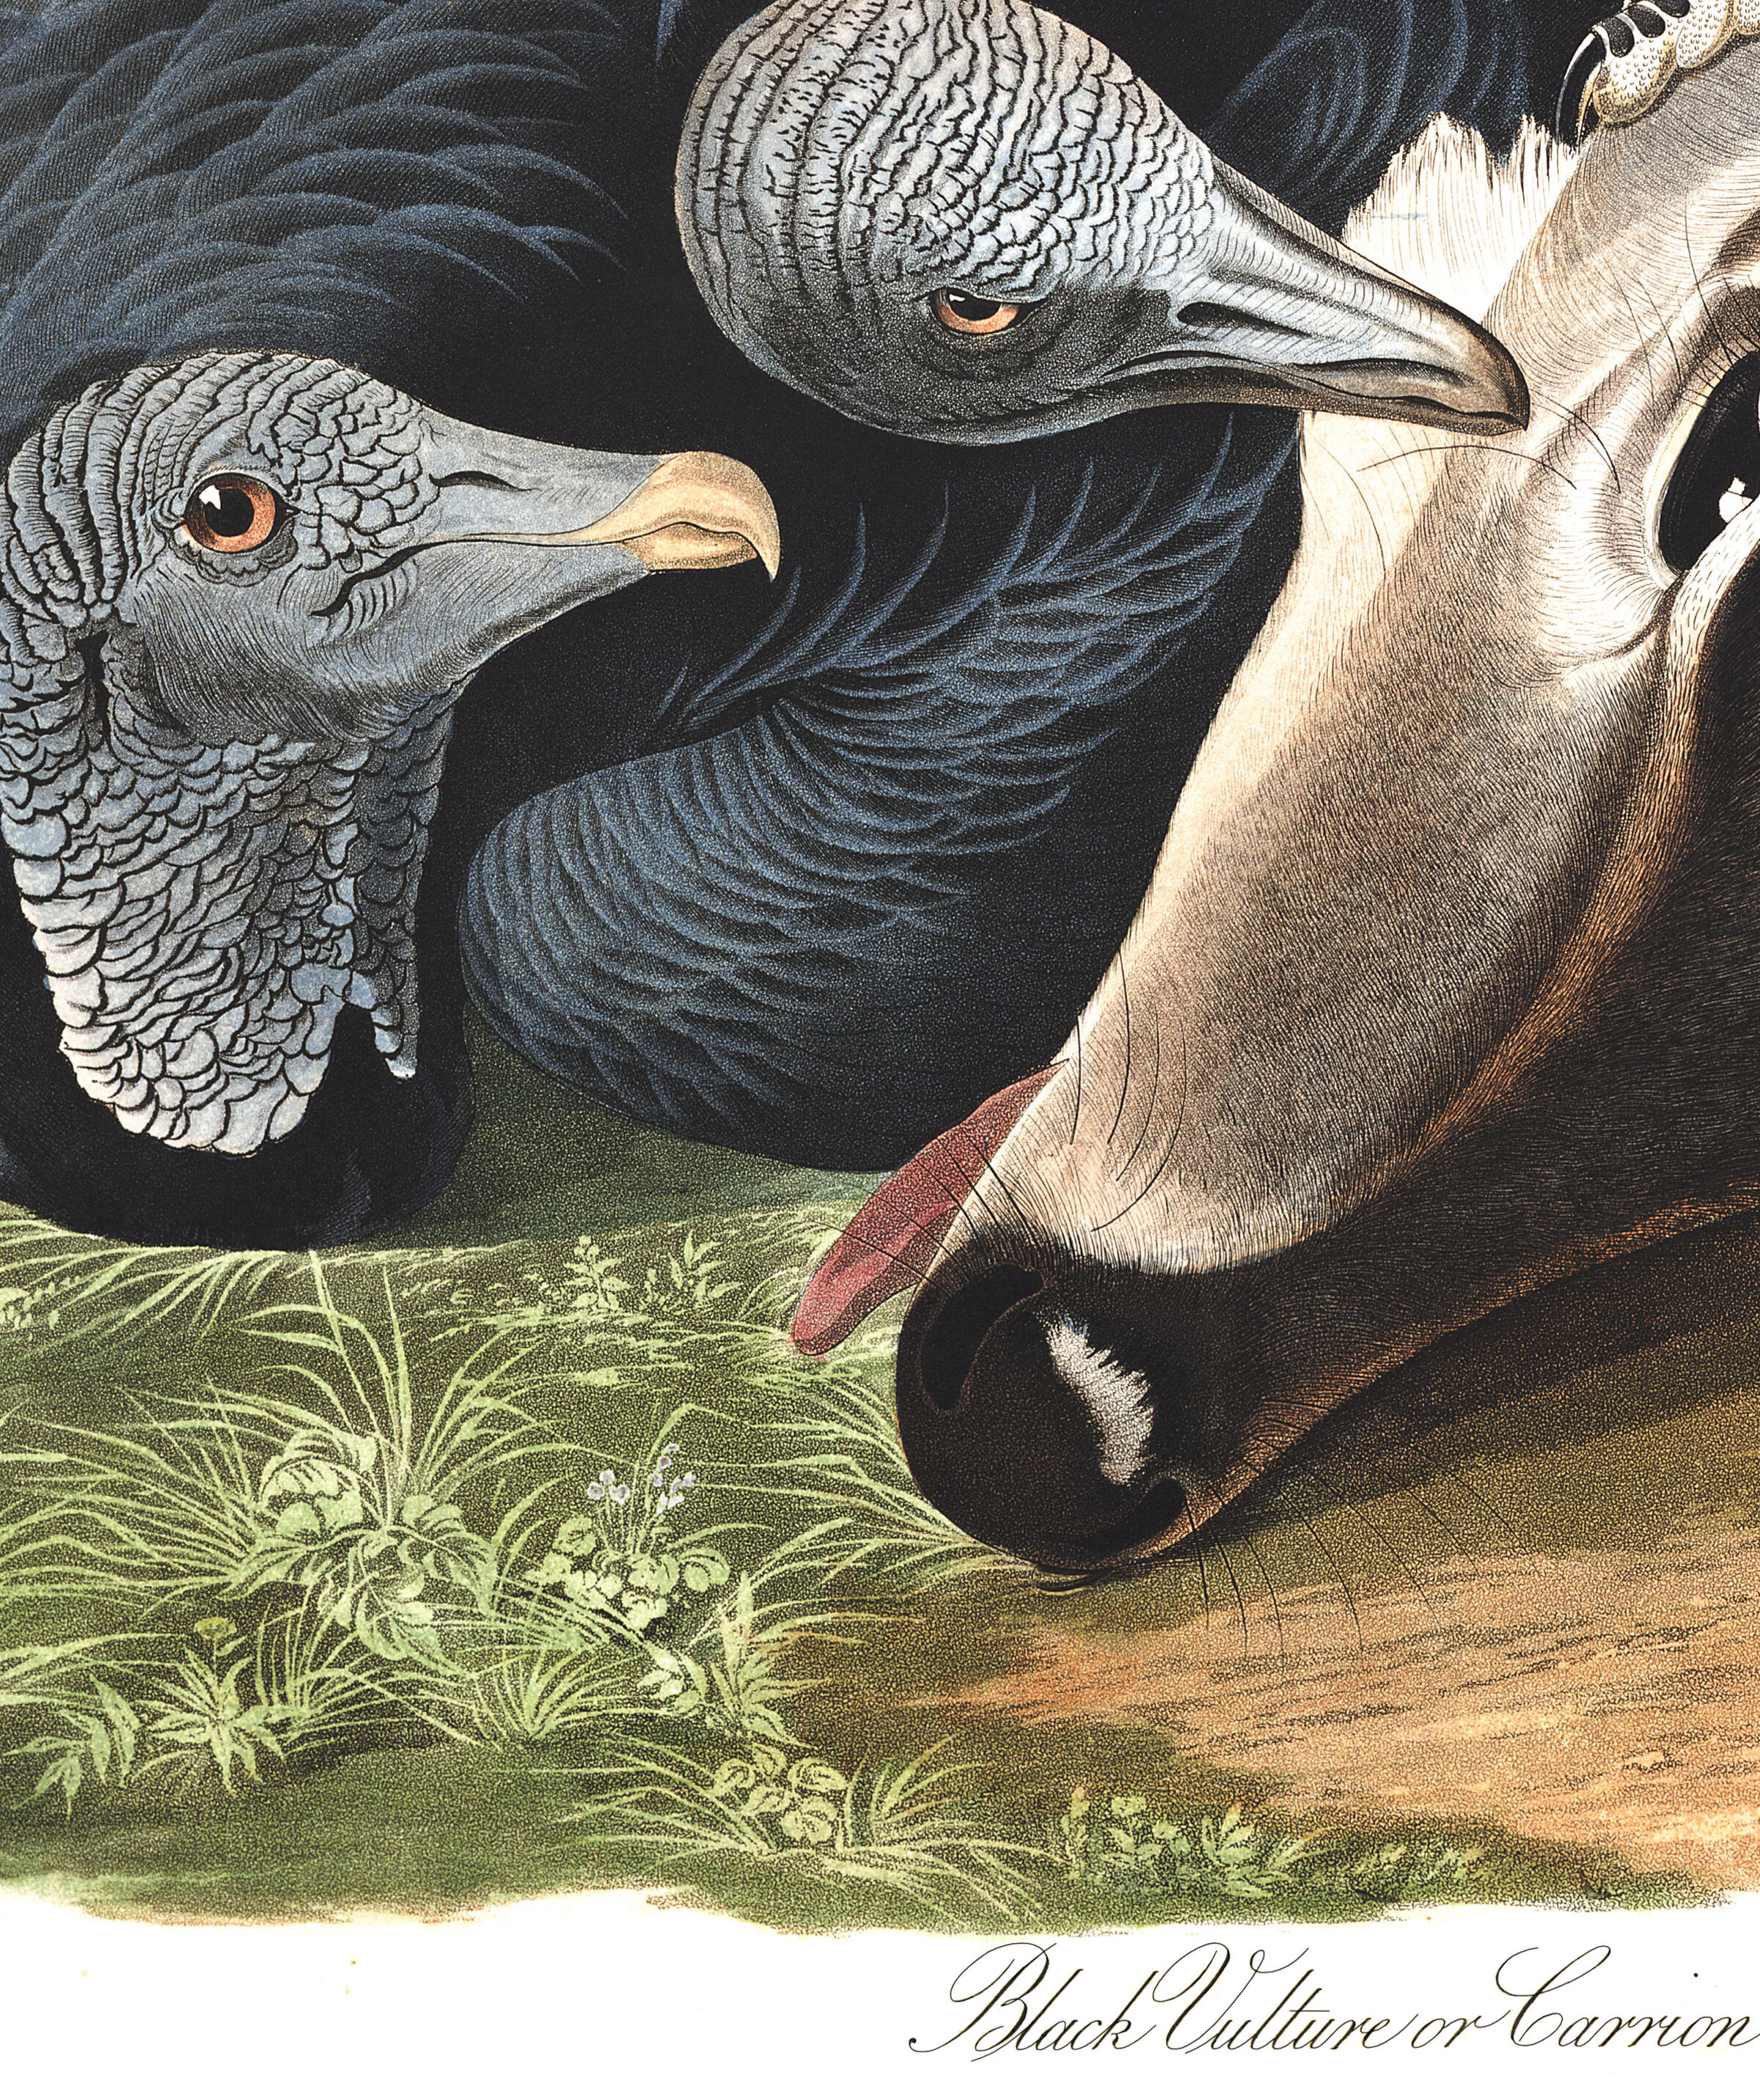 Black Vulture, or Carrion Crow | John James Audubon's Birds